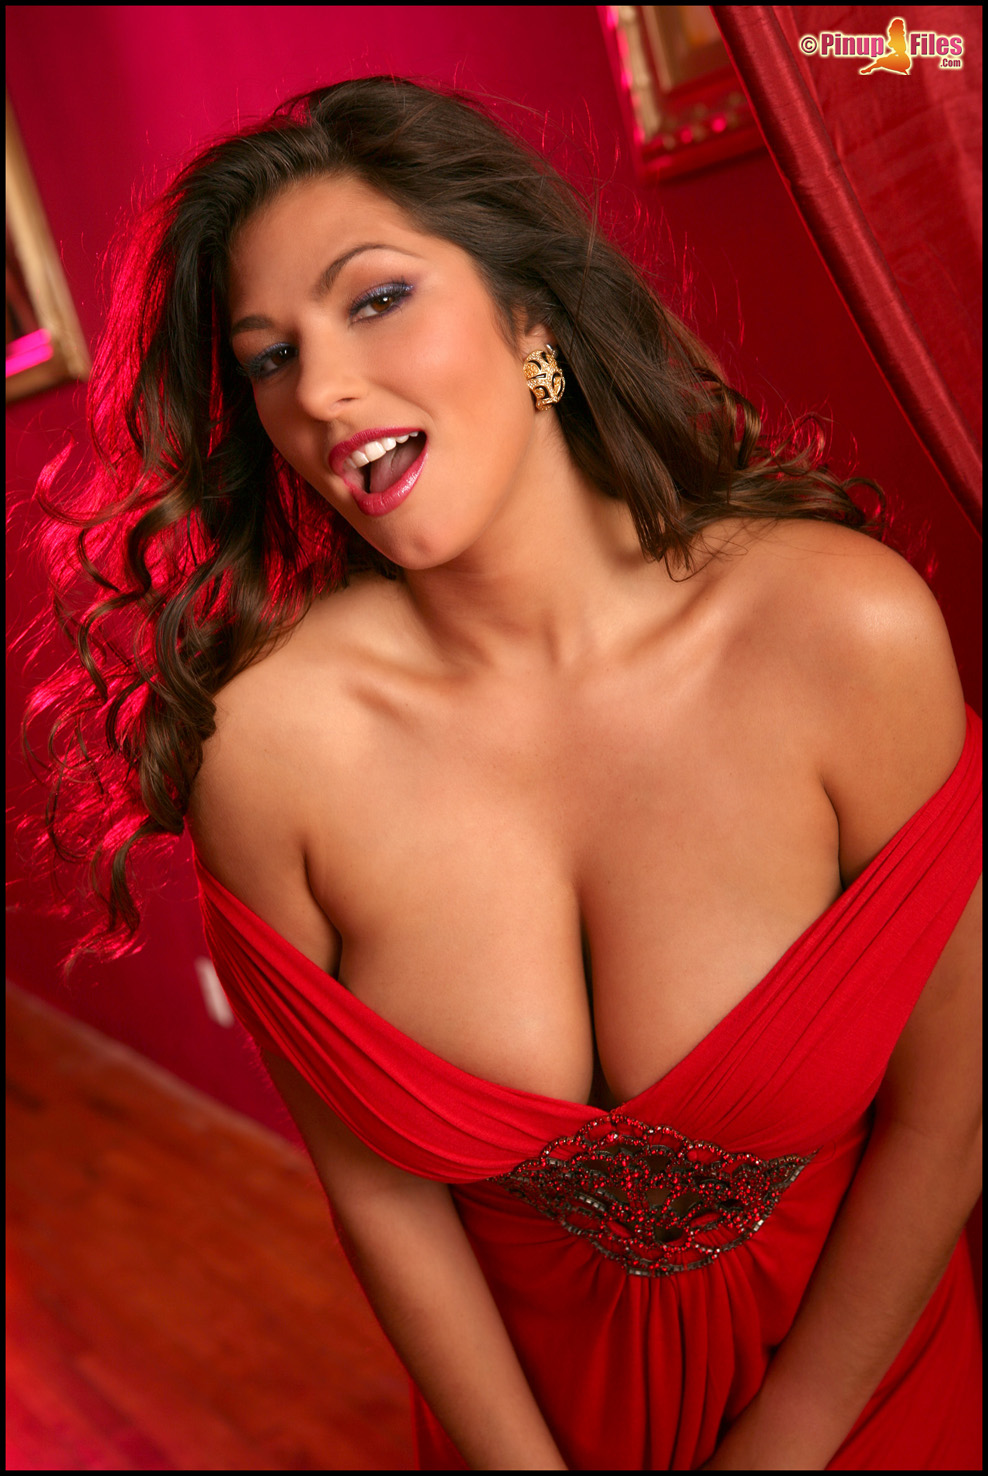 Hynas Naked Cheap cleavage babes - gallery | ebaum's world